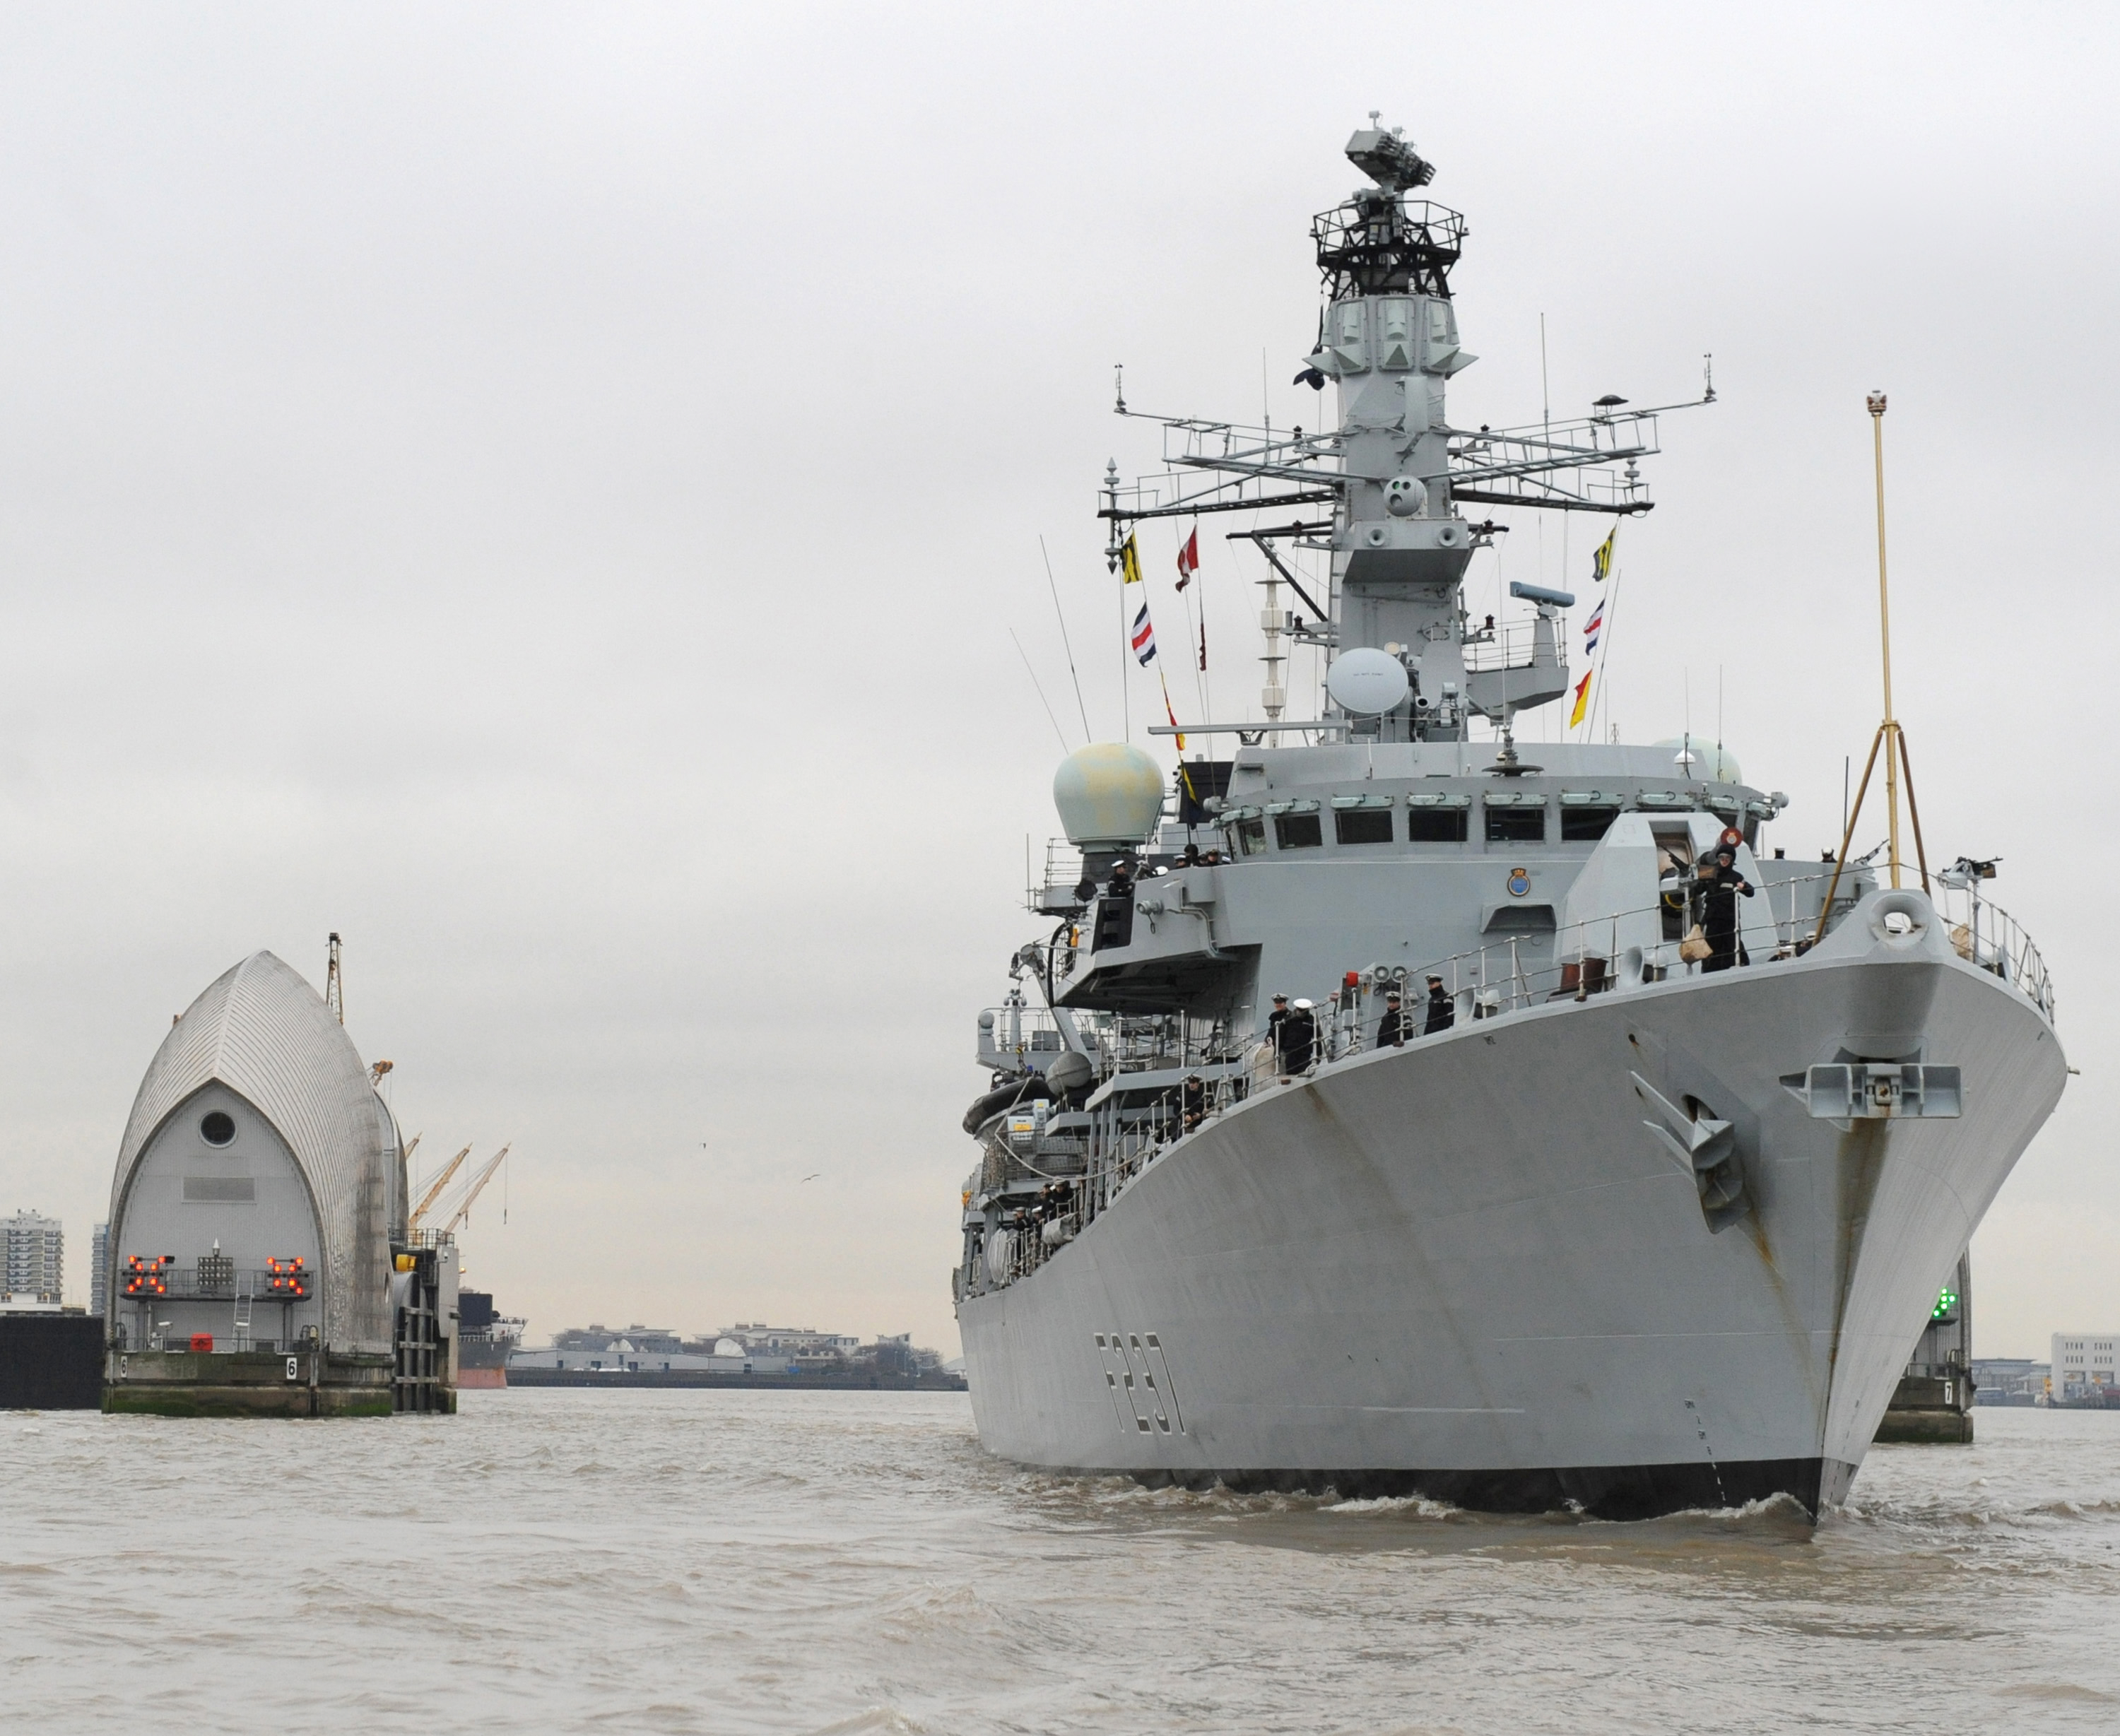 http://upload.wikimedia.org/wikipedia/commons/5/53/HMS_Westminster_Visits_London_MOD_45152386.jpg